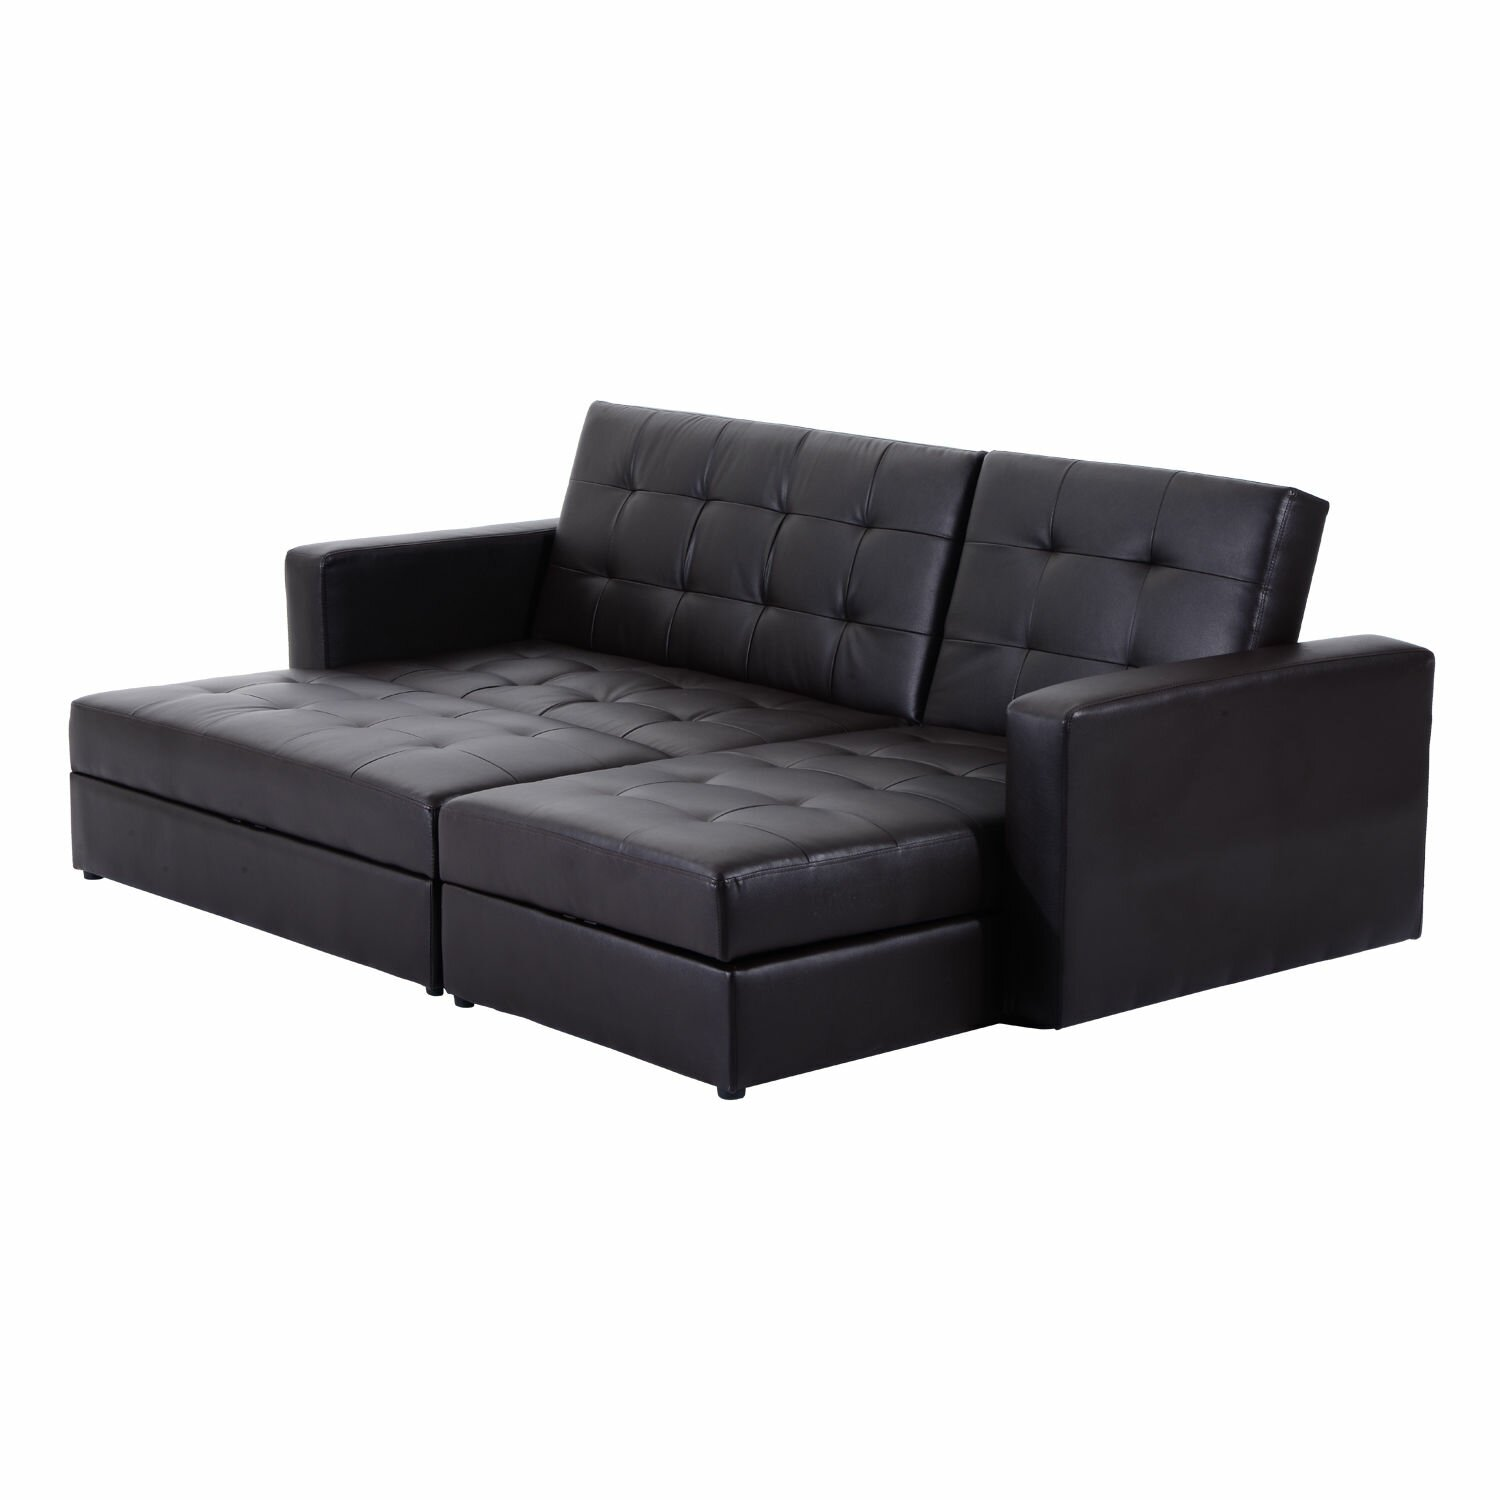 Homcom storage sleeper couch sofa bed wayfair uk for 3 on a couch